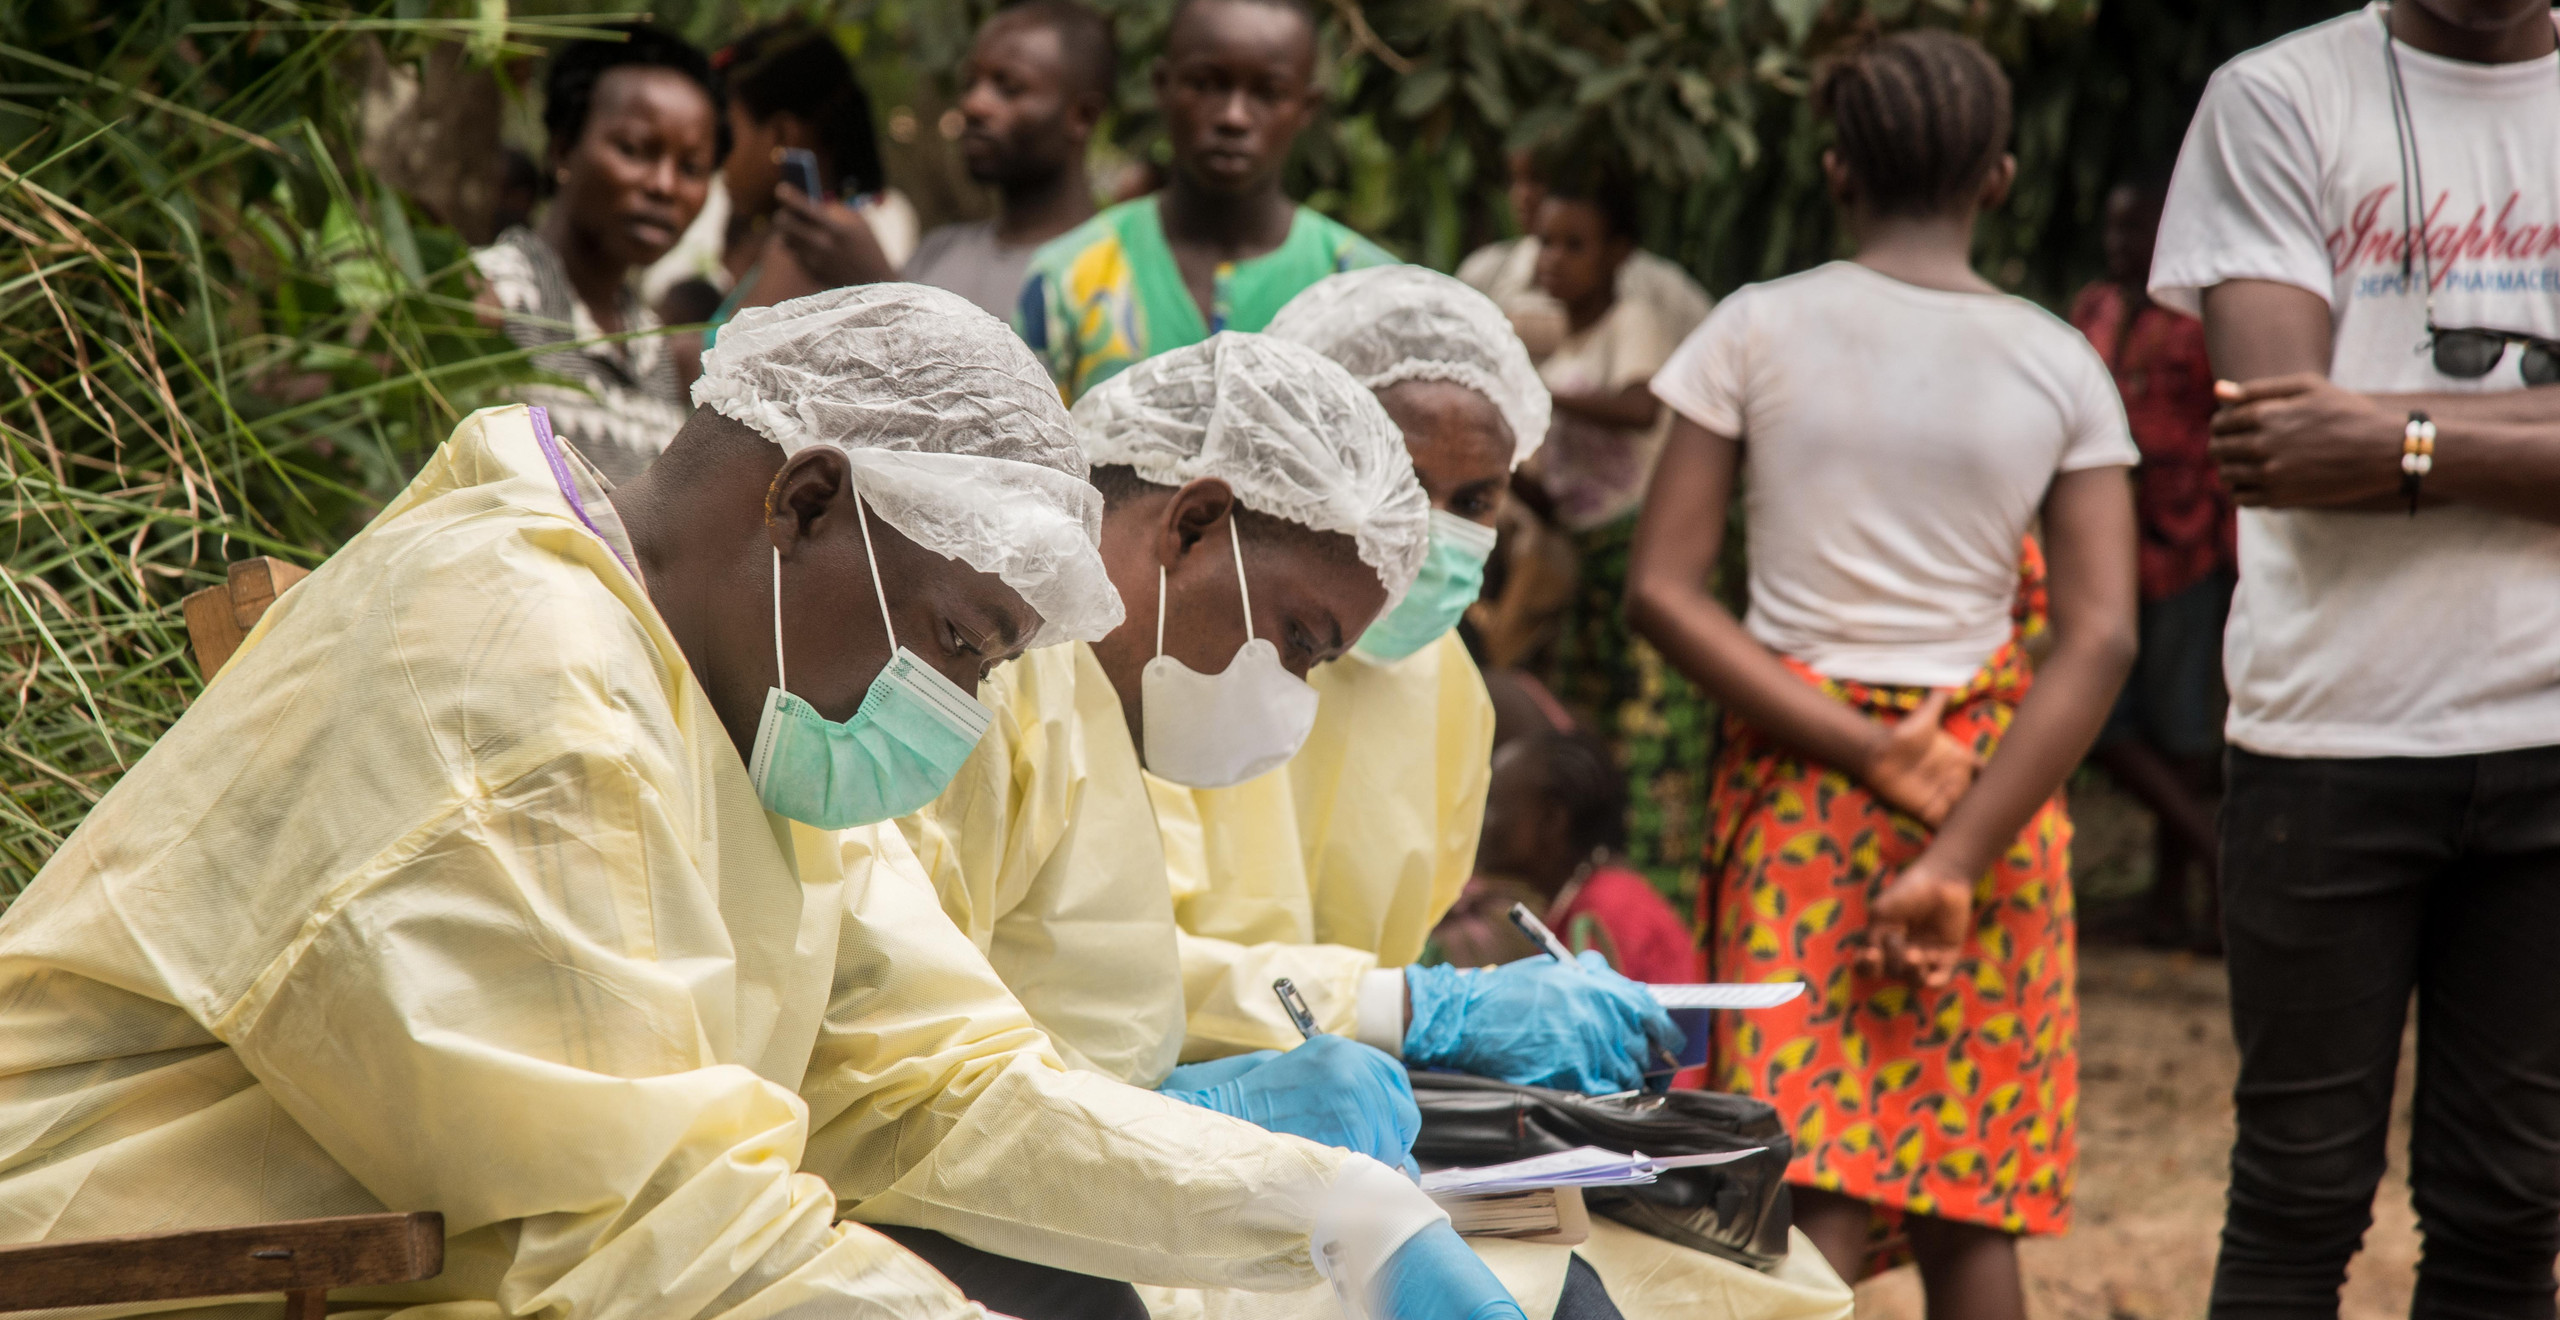 Ebola vaccination campaign in Mbandaka - in Équateur Province (DRC) 90% of the vaccinators are from local communities.